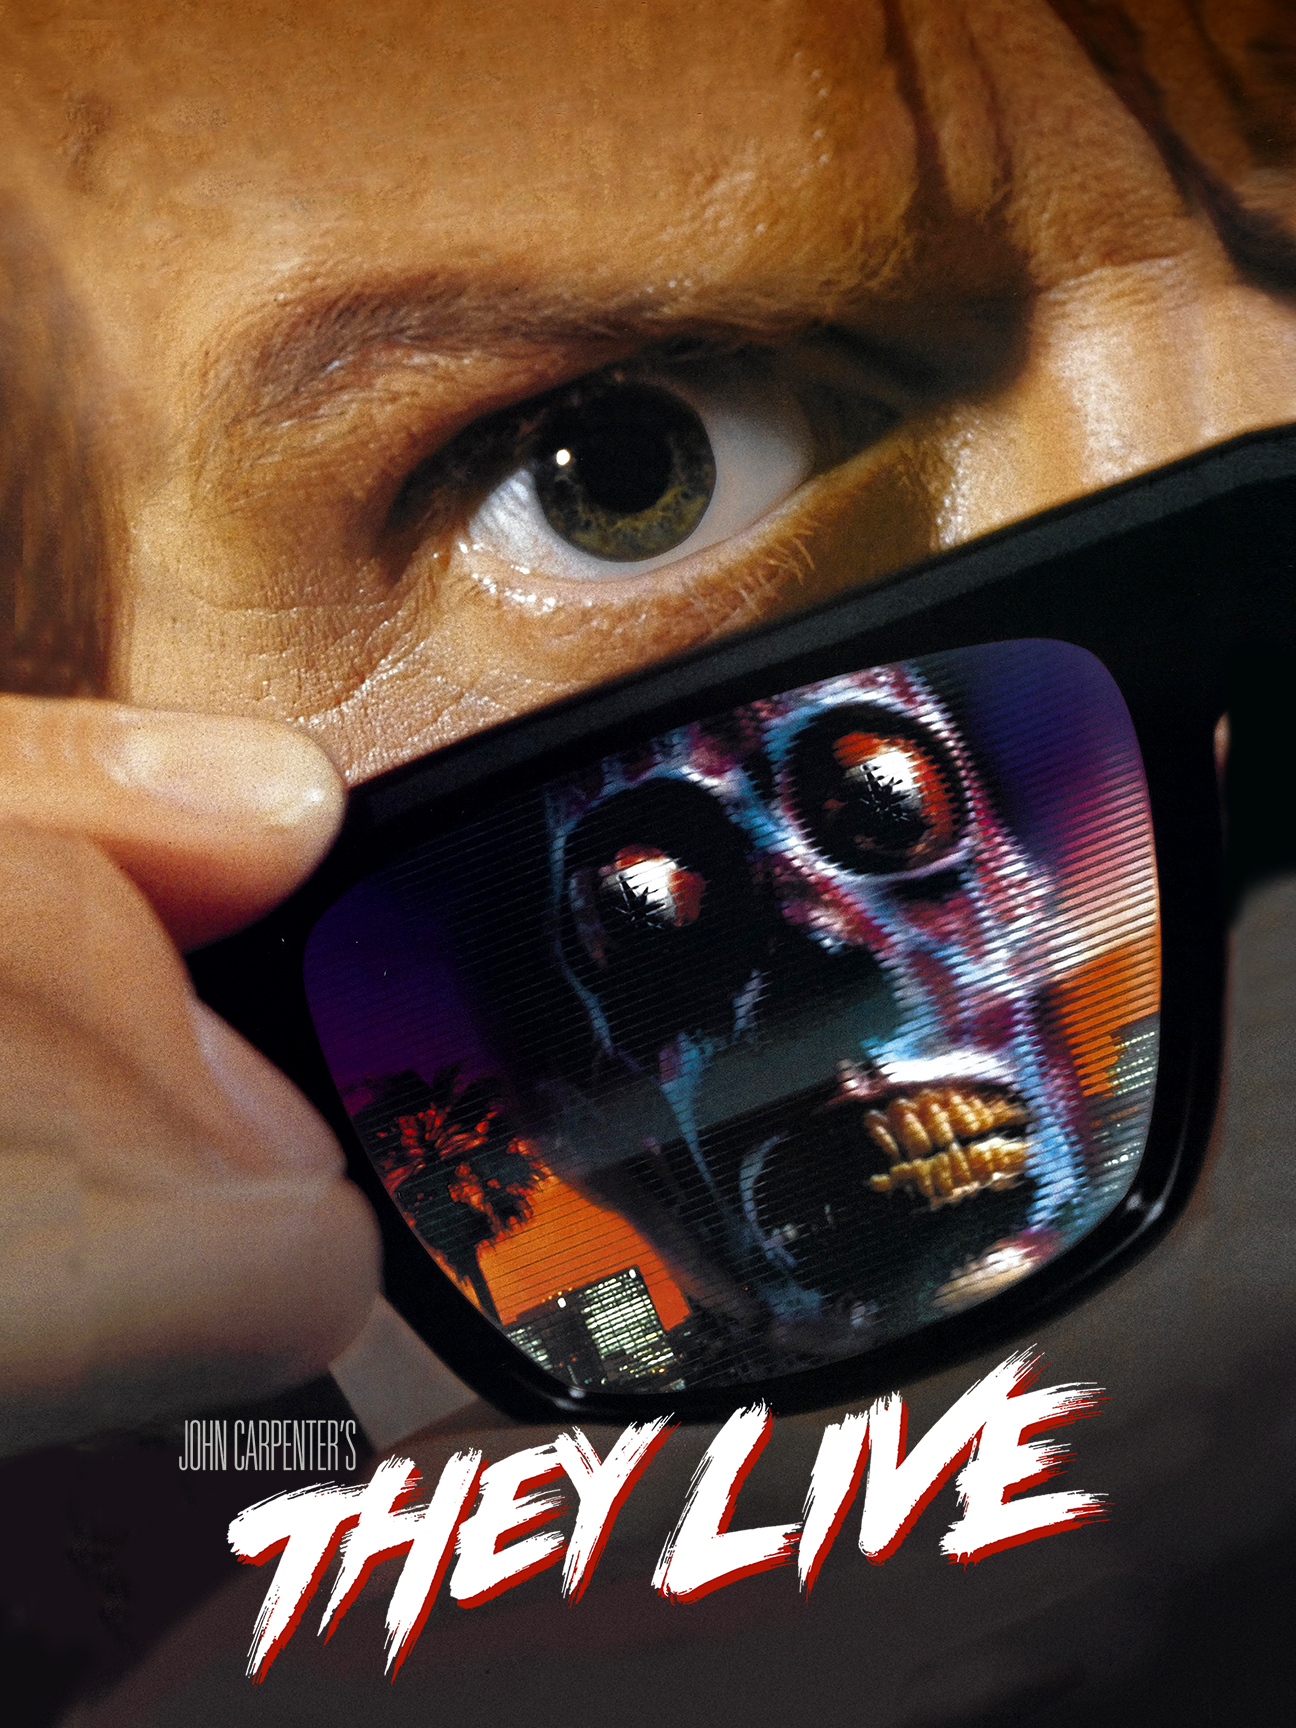 THEY LIVE [Collector's Edition] + Exclusive NECA Action Figure + Poster (SOLD OUT)